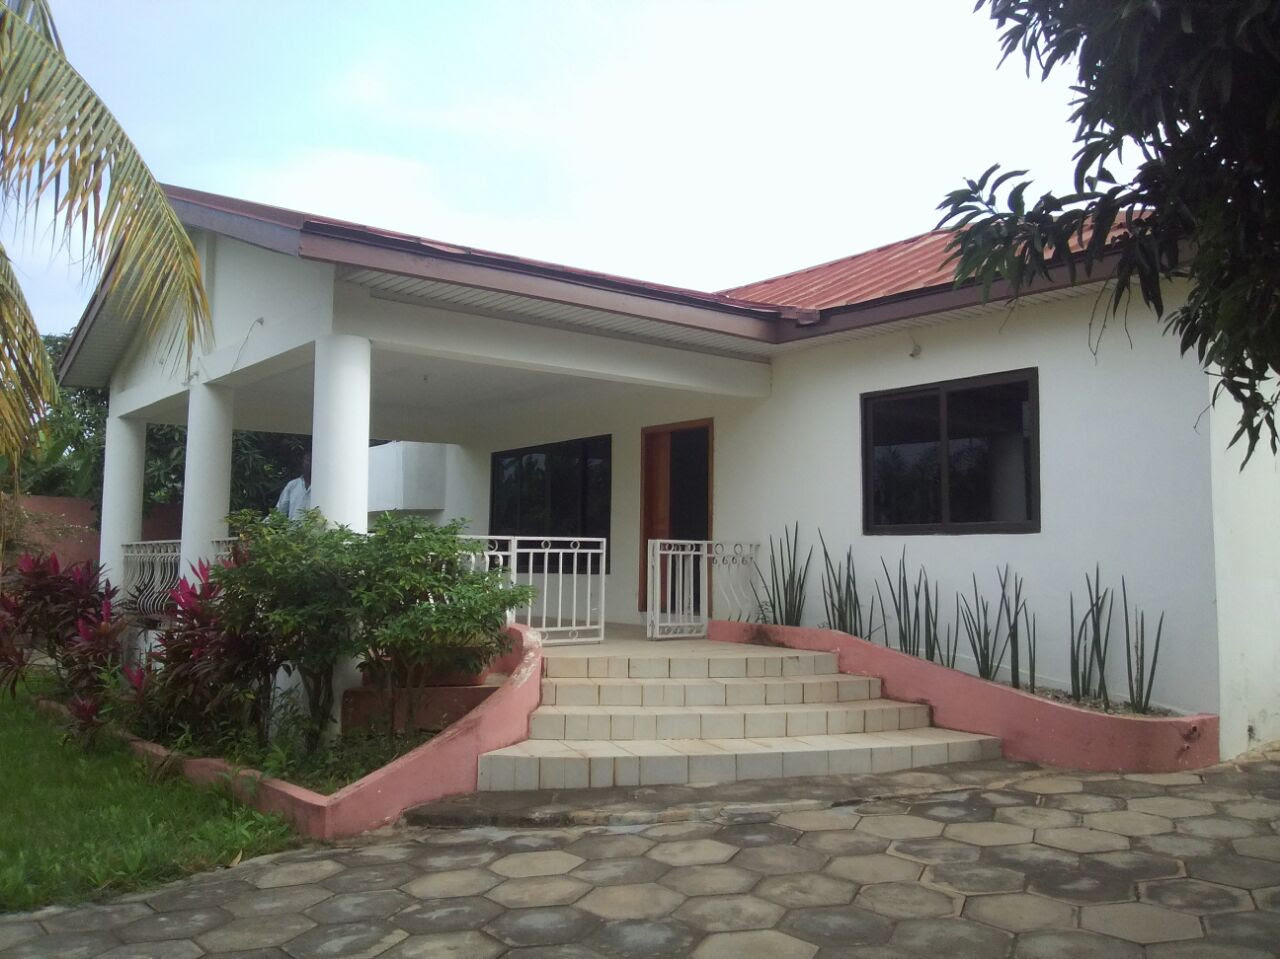 6 bedroom house for sale in Accra Houses For Sale